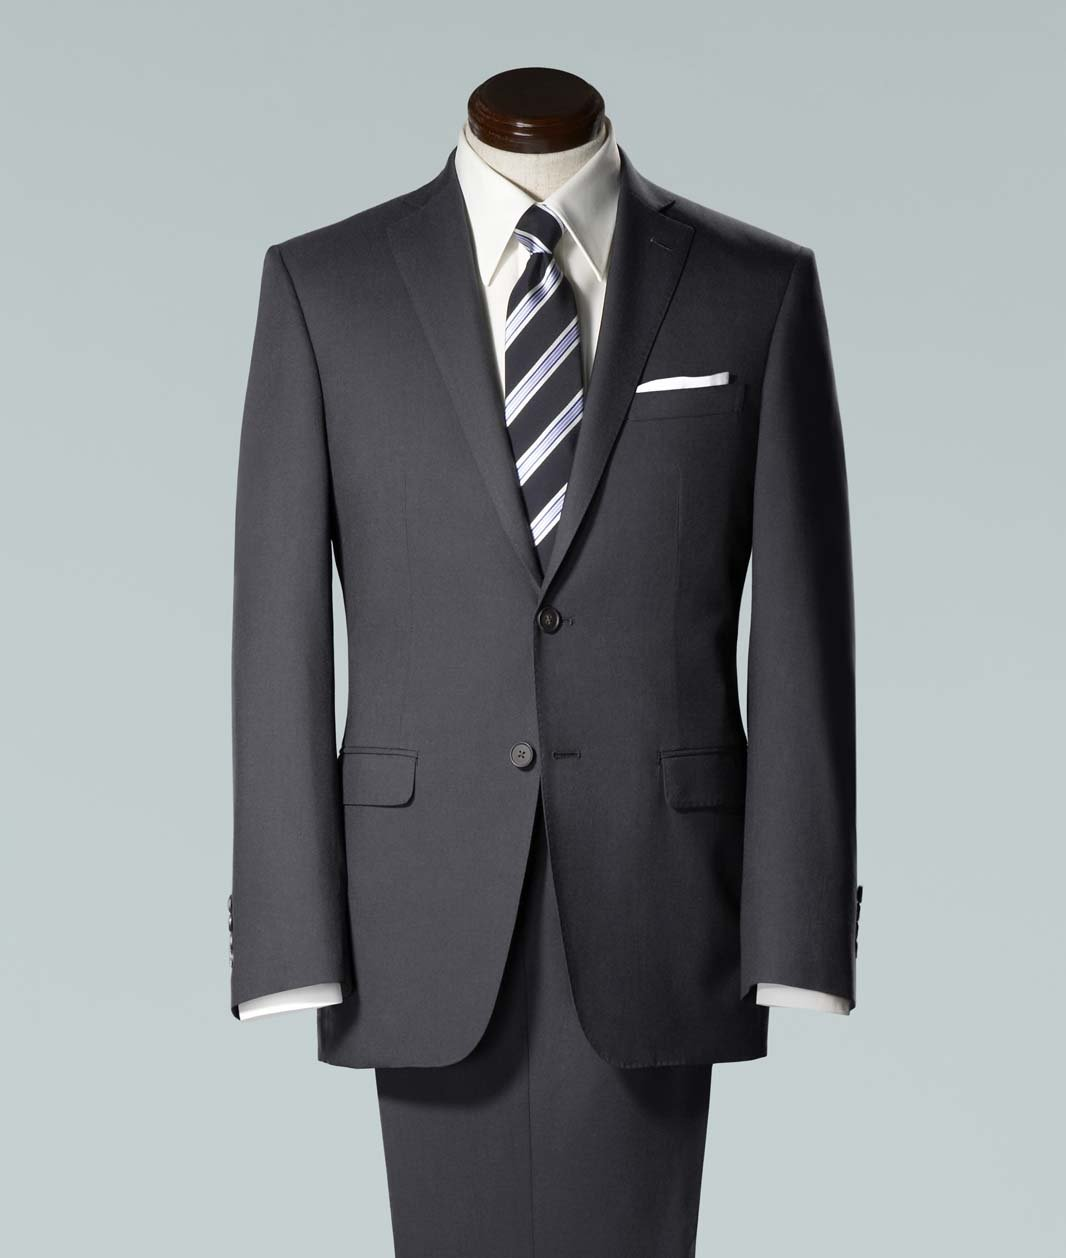 business suit wool 100% washable business suits - buy menu0027s suits,100% wool washable suit,mens  business suits AODNDDN